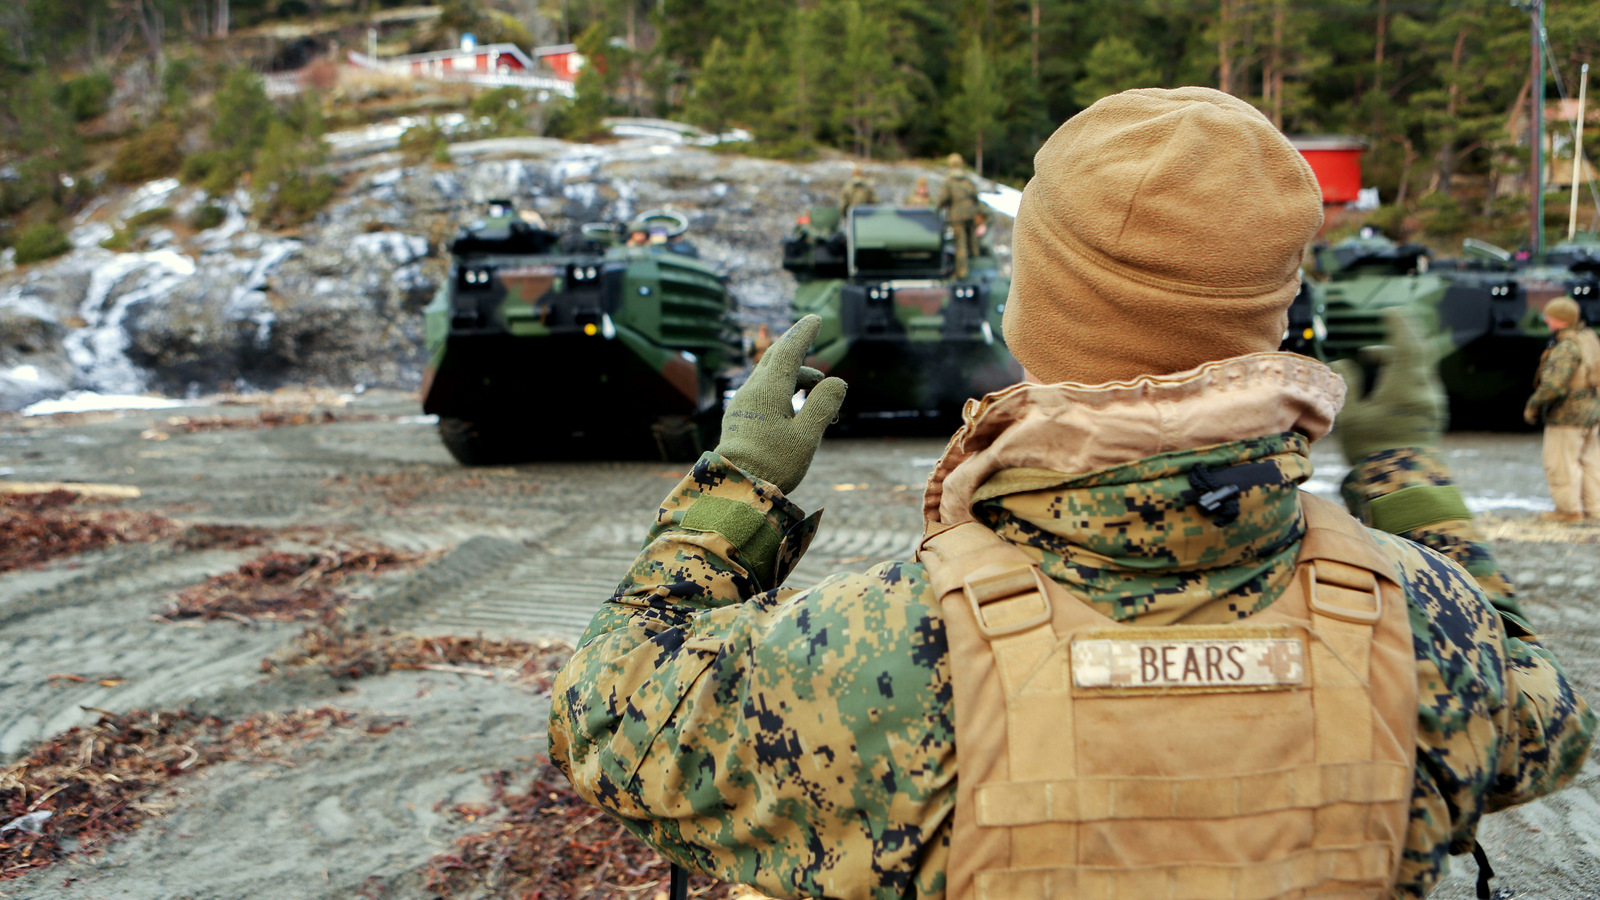 U.S. Marine Corps amphibious assault vehicles line up by the Trondheim Fjord, Norway, Jan. 9. These vehicles from the Marine Corps Prepositioning Program-Norway will support exercise Cold Response 16, scheduled for later this month, with crisis response equipment including M1A1 battle tanks, amphibious assault vehicles, artillery, and logistics equipment drawn from Norwegian caves. (Photo: U.S. Marine Corps)